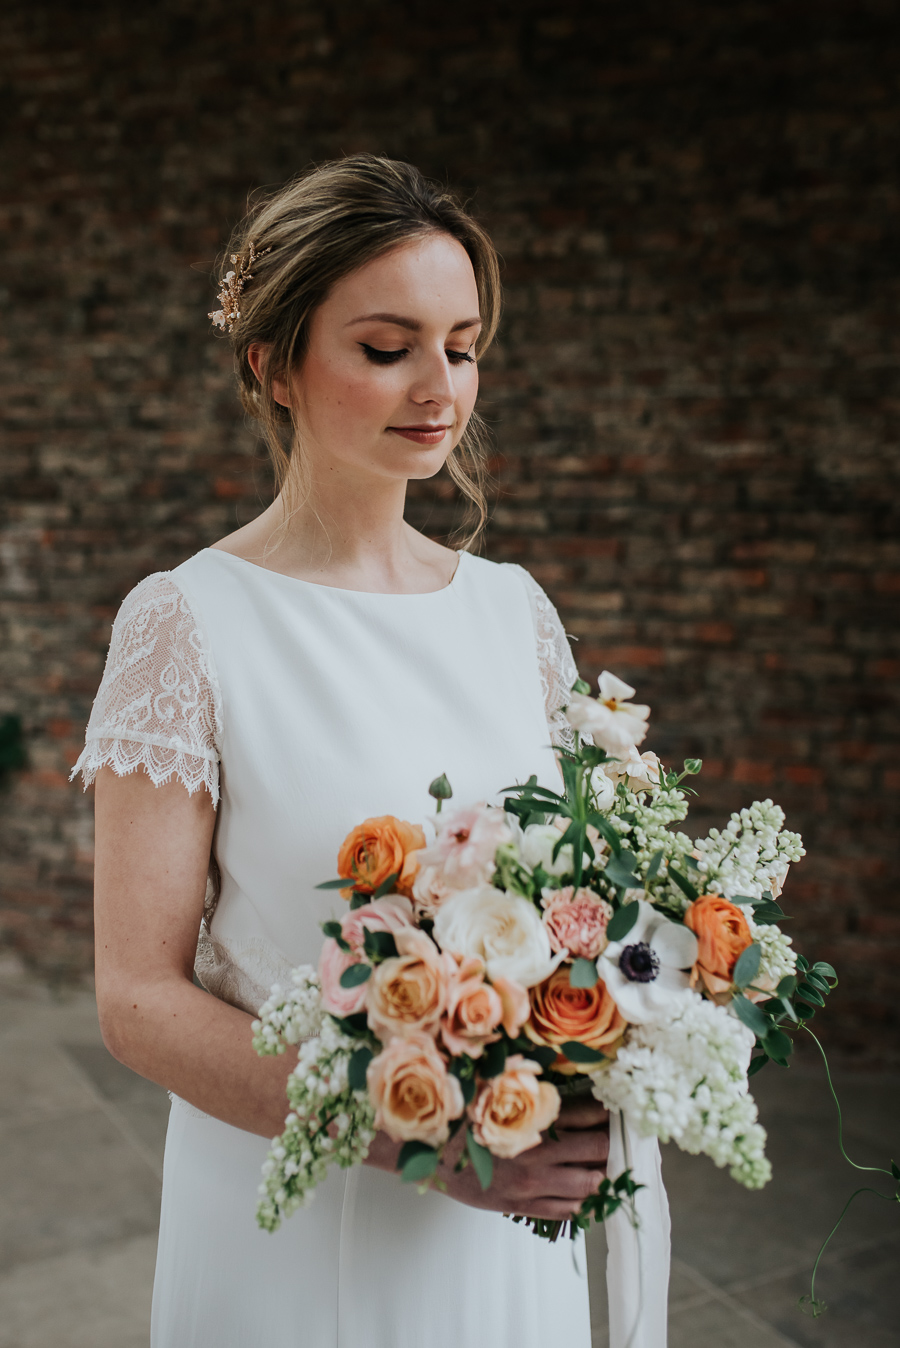 Michelle Cordner Photography on the English Wedding Blog (8)